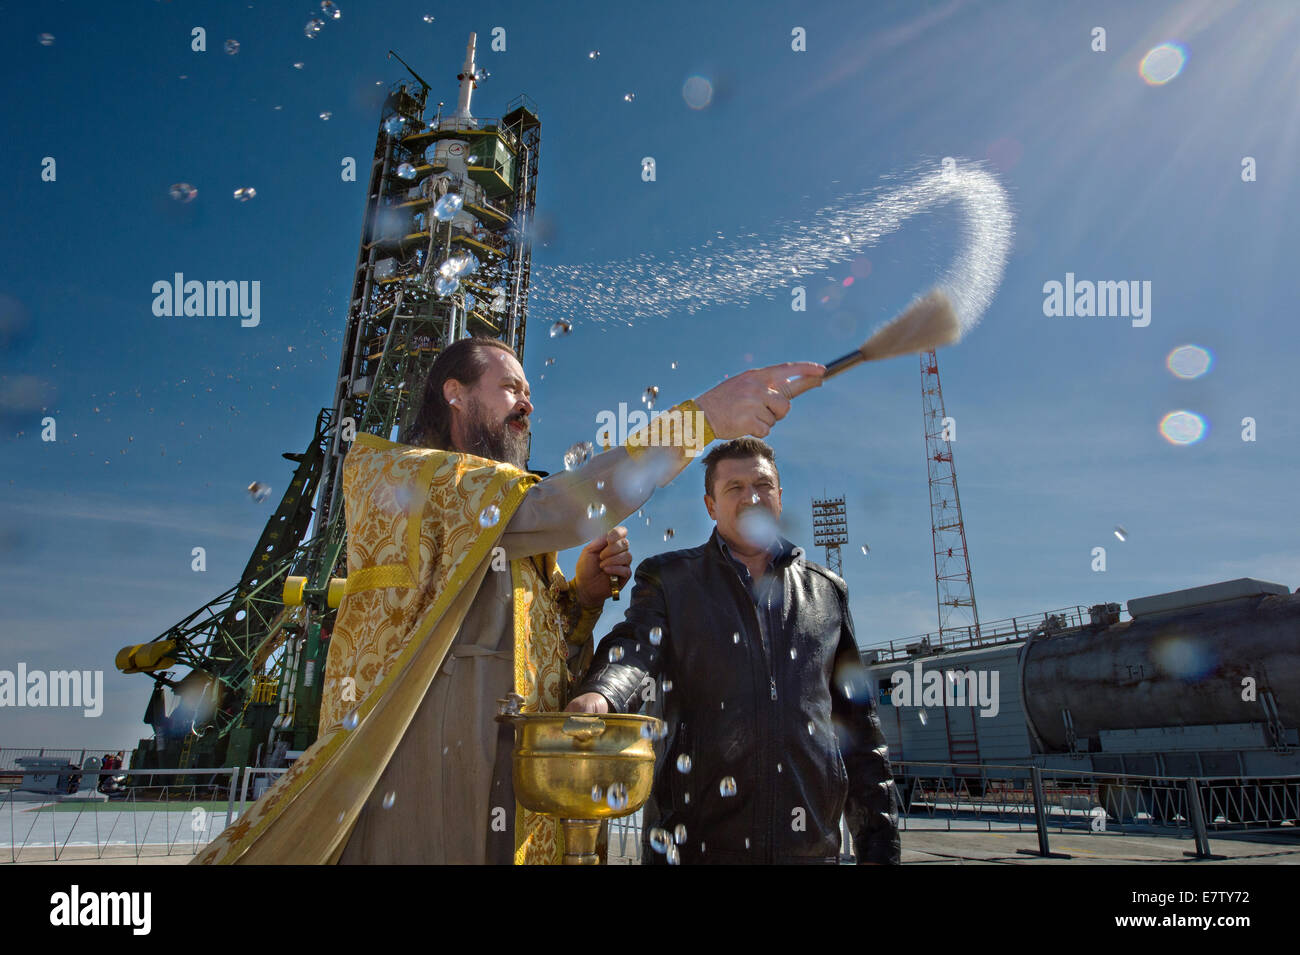 A Russian Orthodox priest blesses the Soyuz rocket on the launch pad at the Baikonur Cosmodrome September 24, 2014 Stock Photo